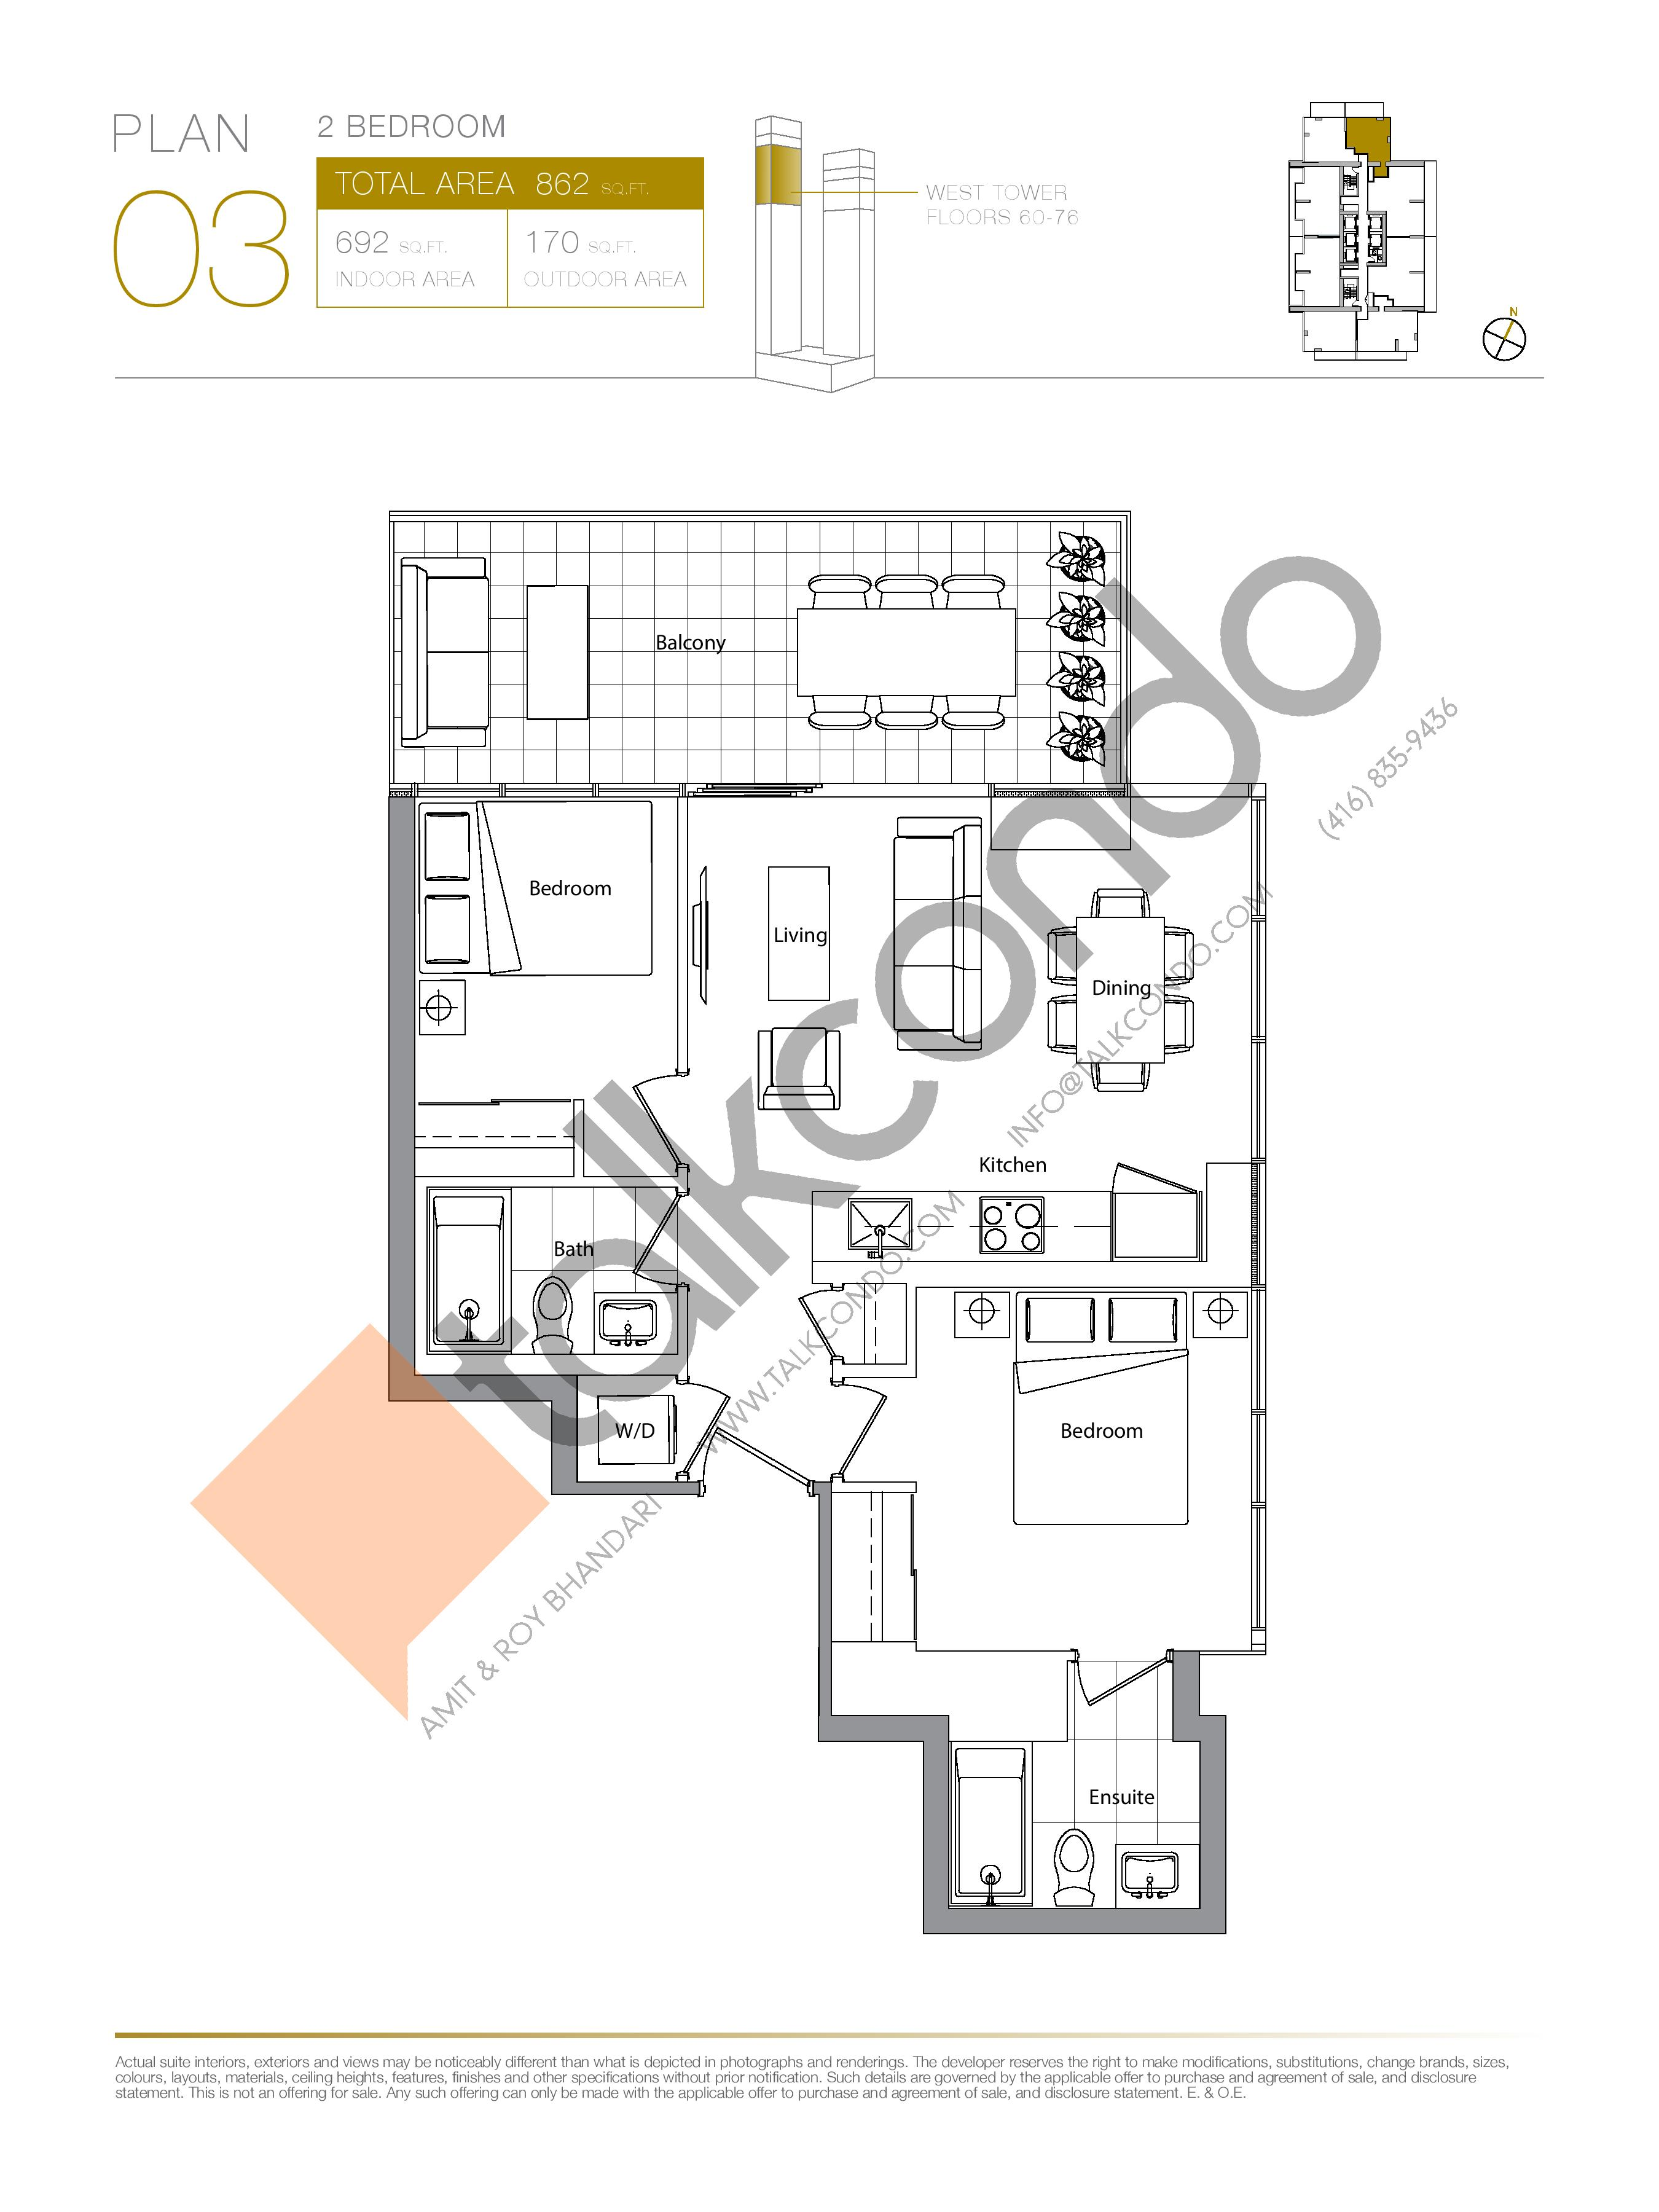 Plan 03 (New Release) Upper Floor Plan at Concord Canada House Condos - 692 sq.ft